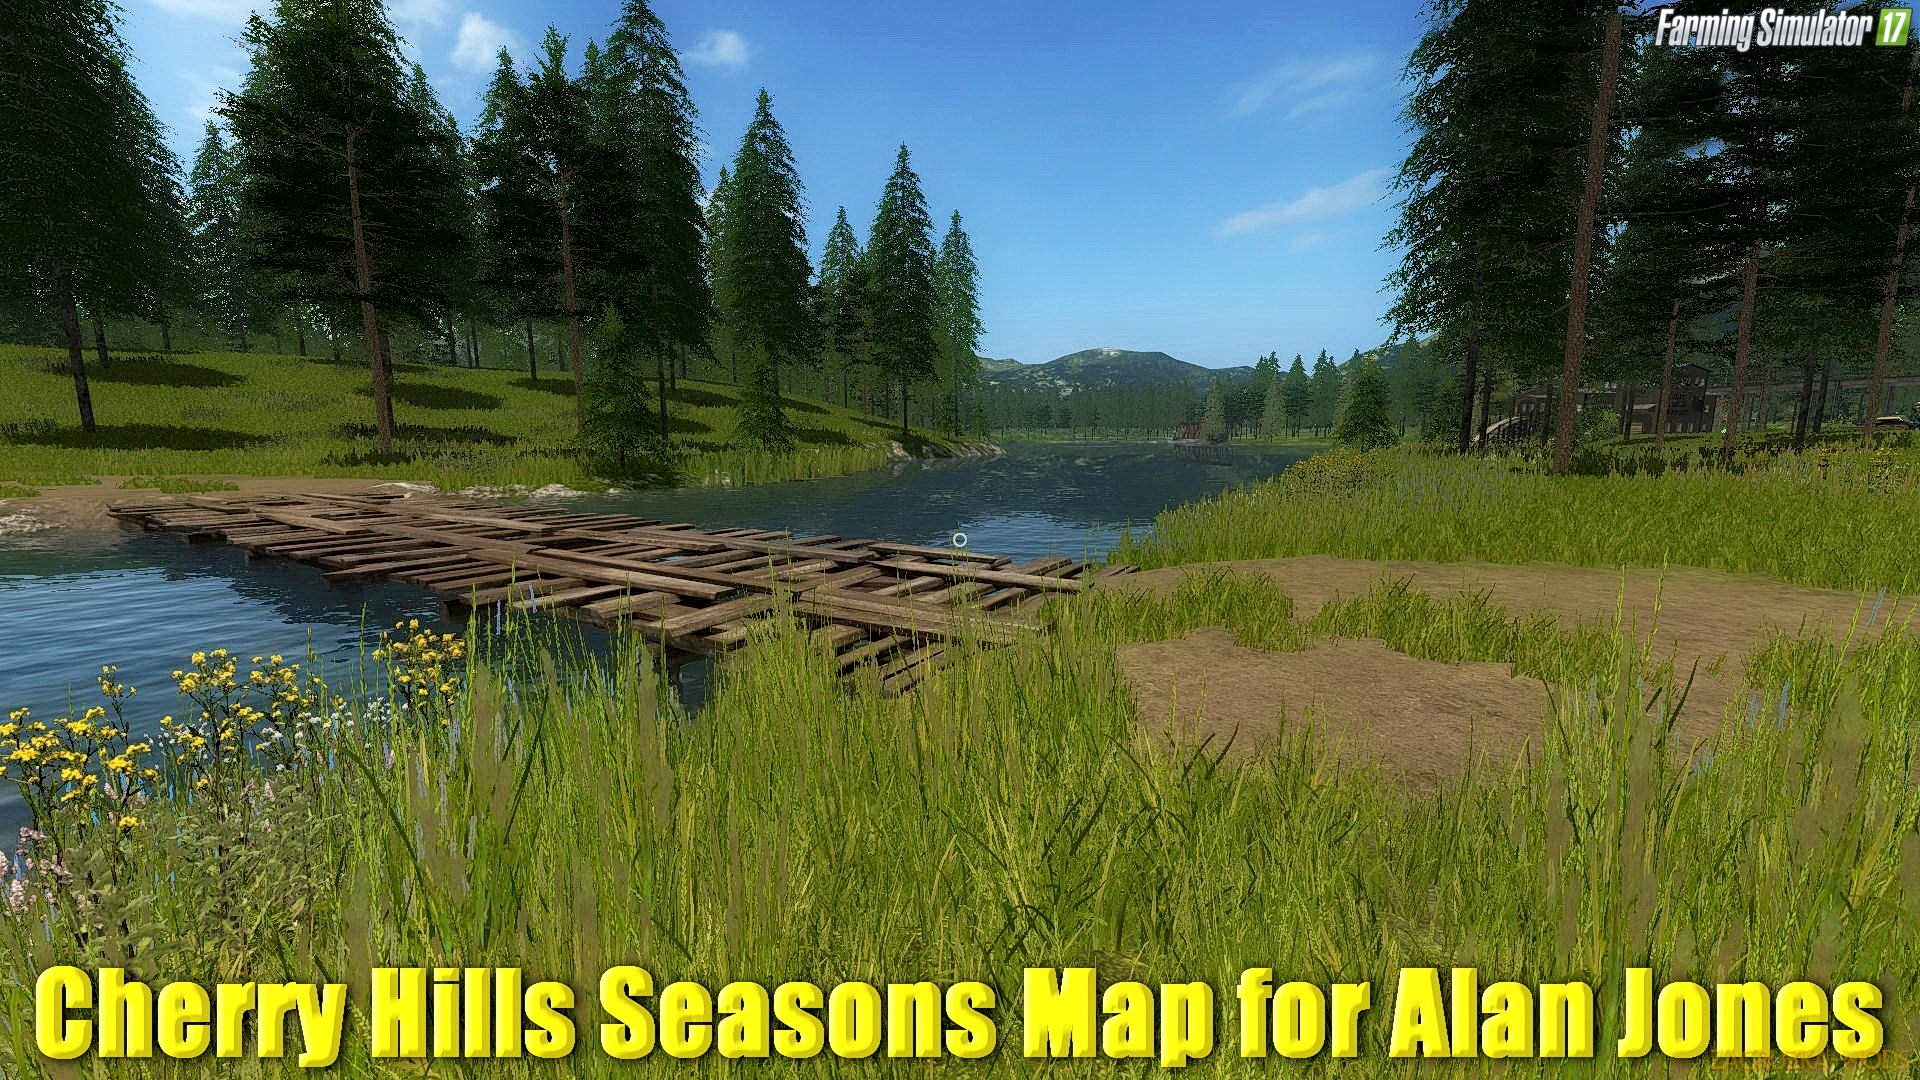 Cherry Hills Seasons Map for Alan Jones v2.0 (Updated) for FS 17